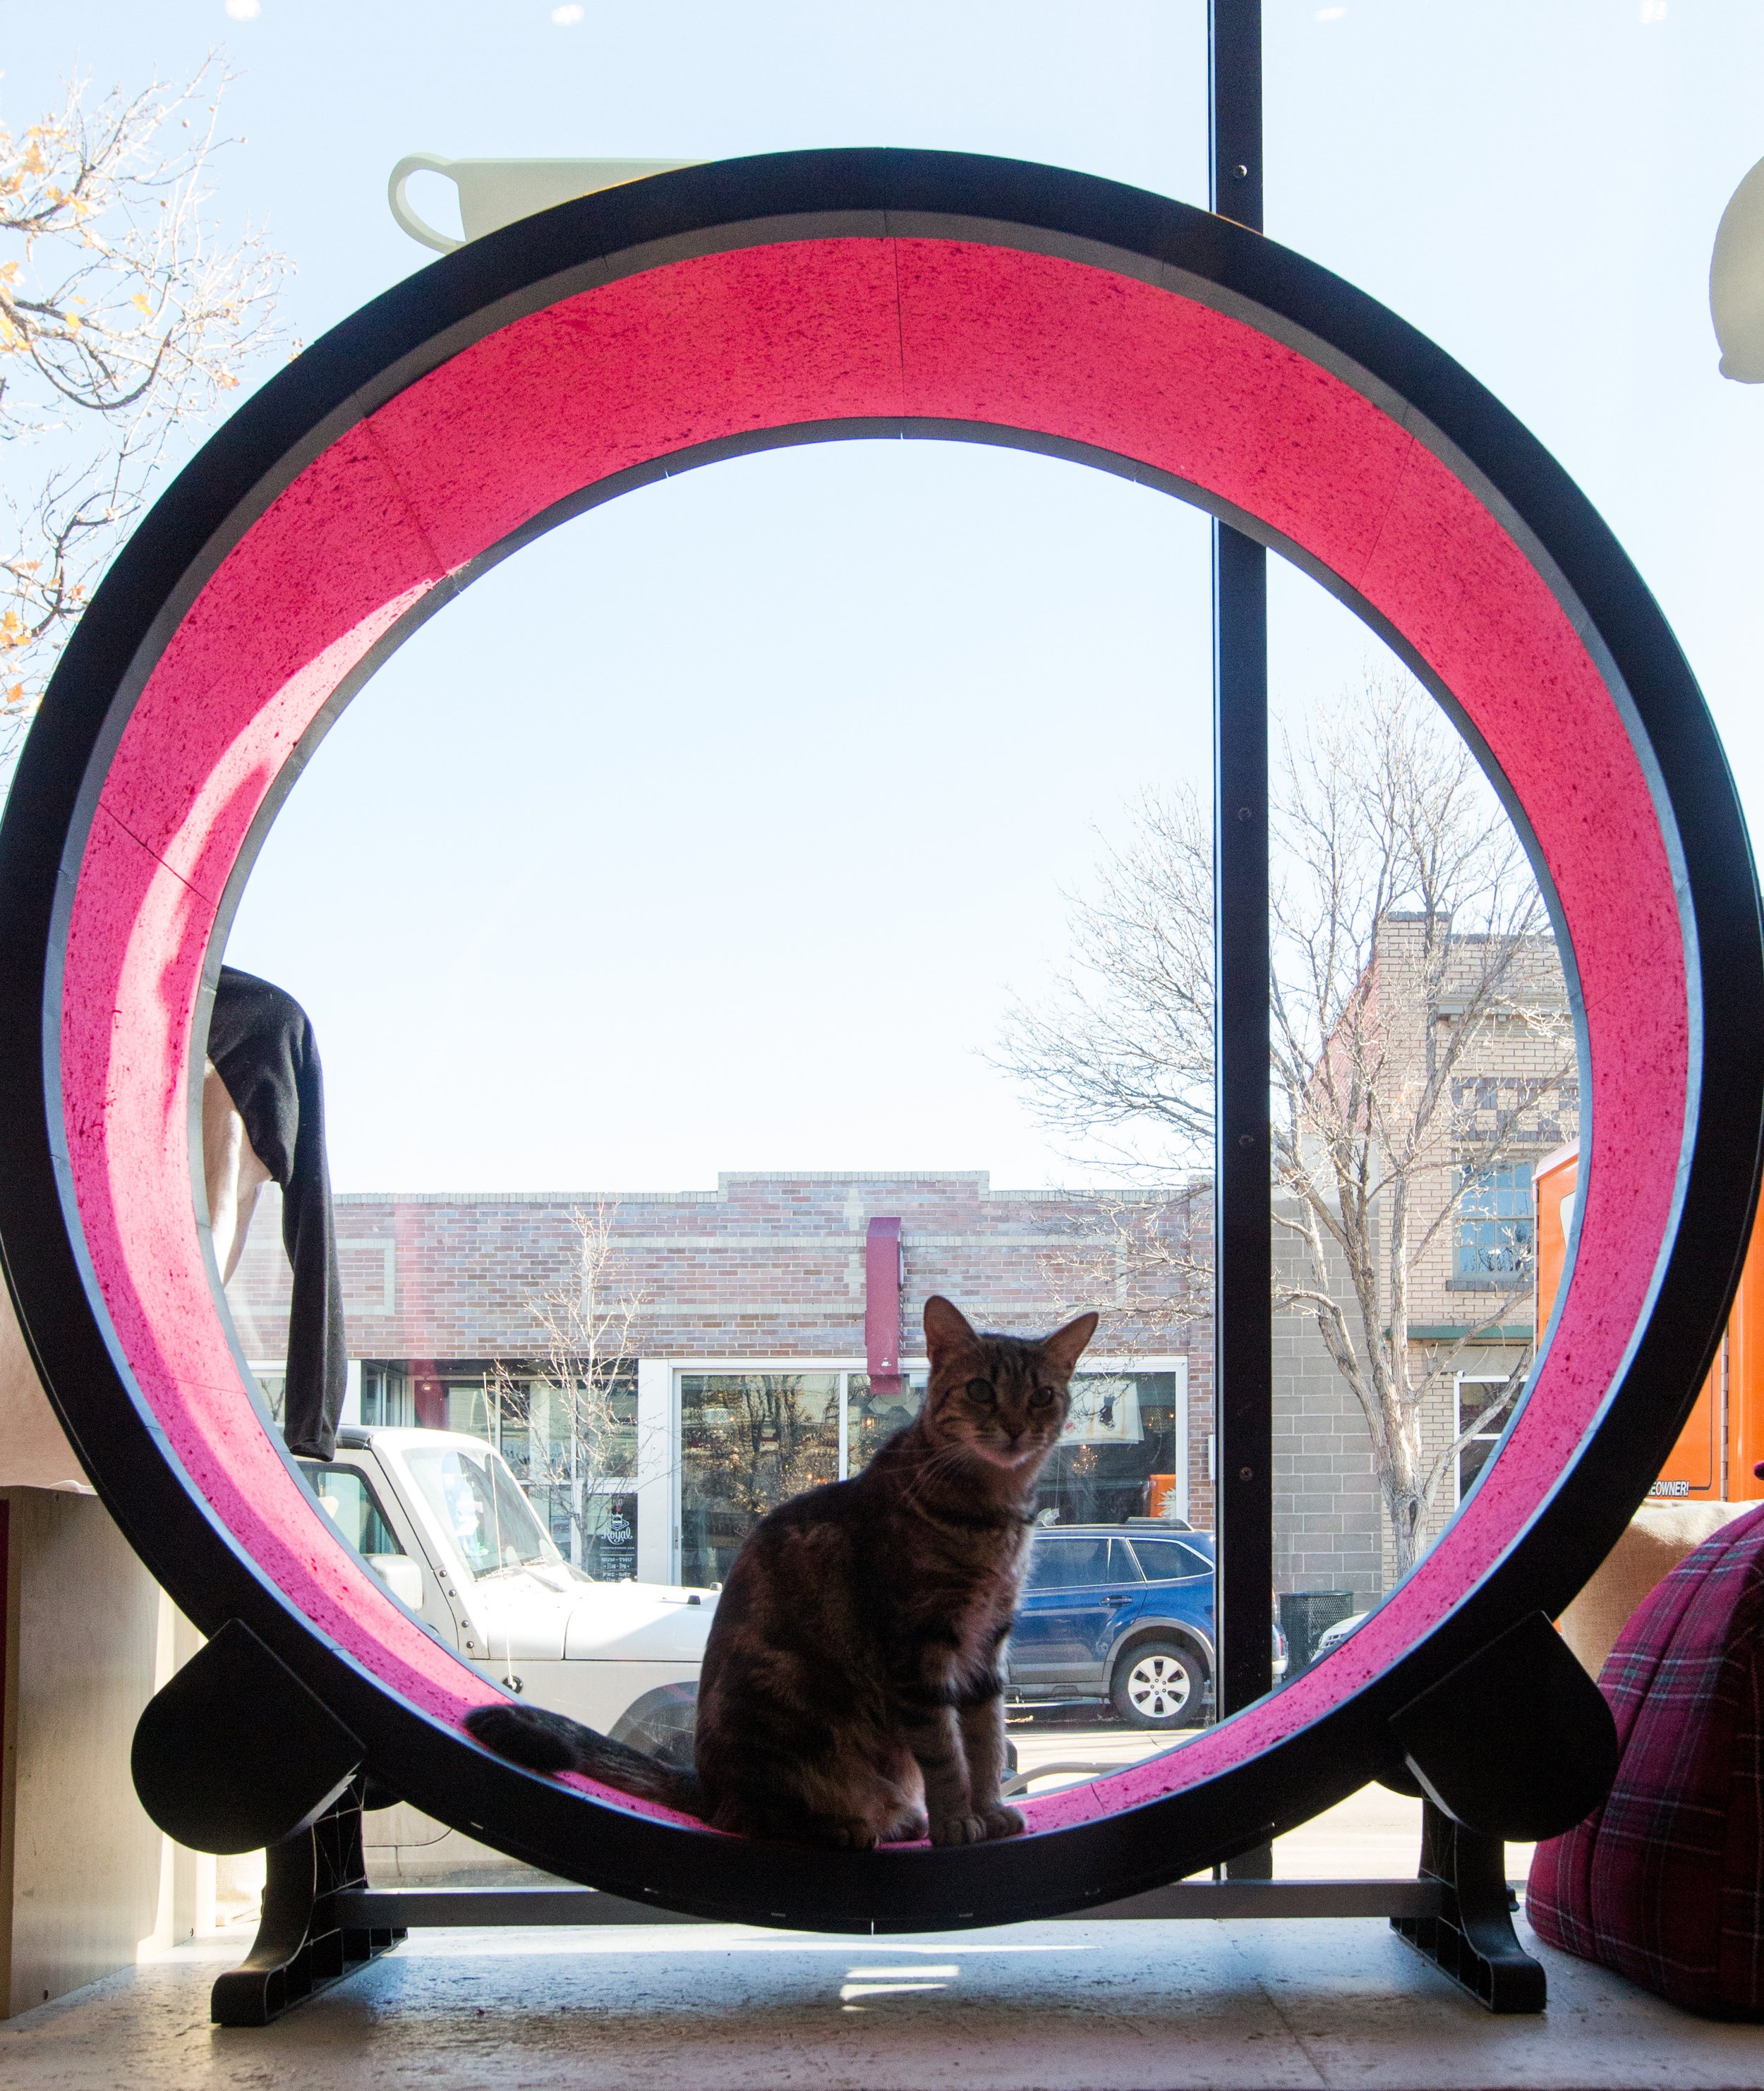 The cat wheel on our cafe window seat is occasionally used by the kitties, to the delight of passersby.  Image credit: Danielle Lirette Photography